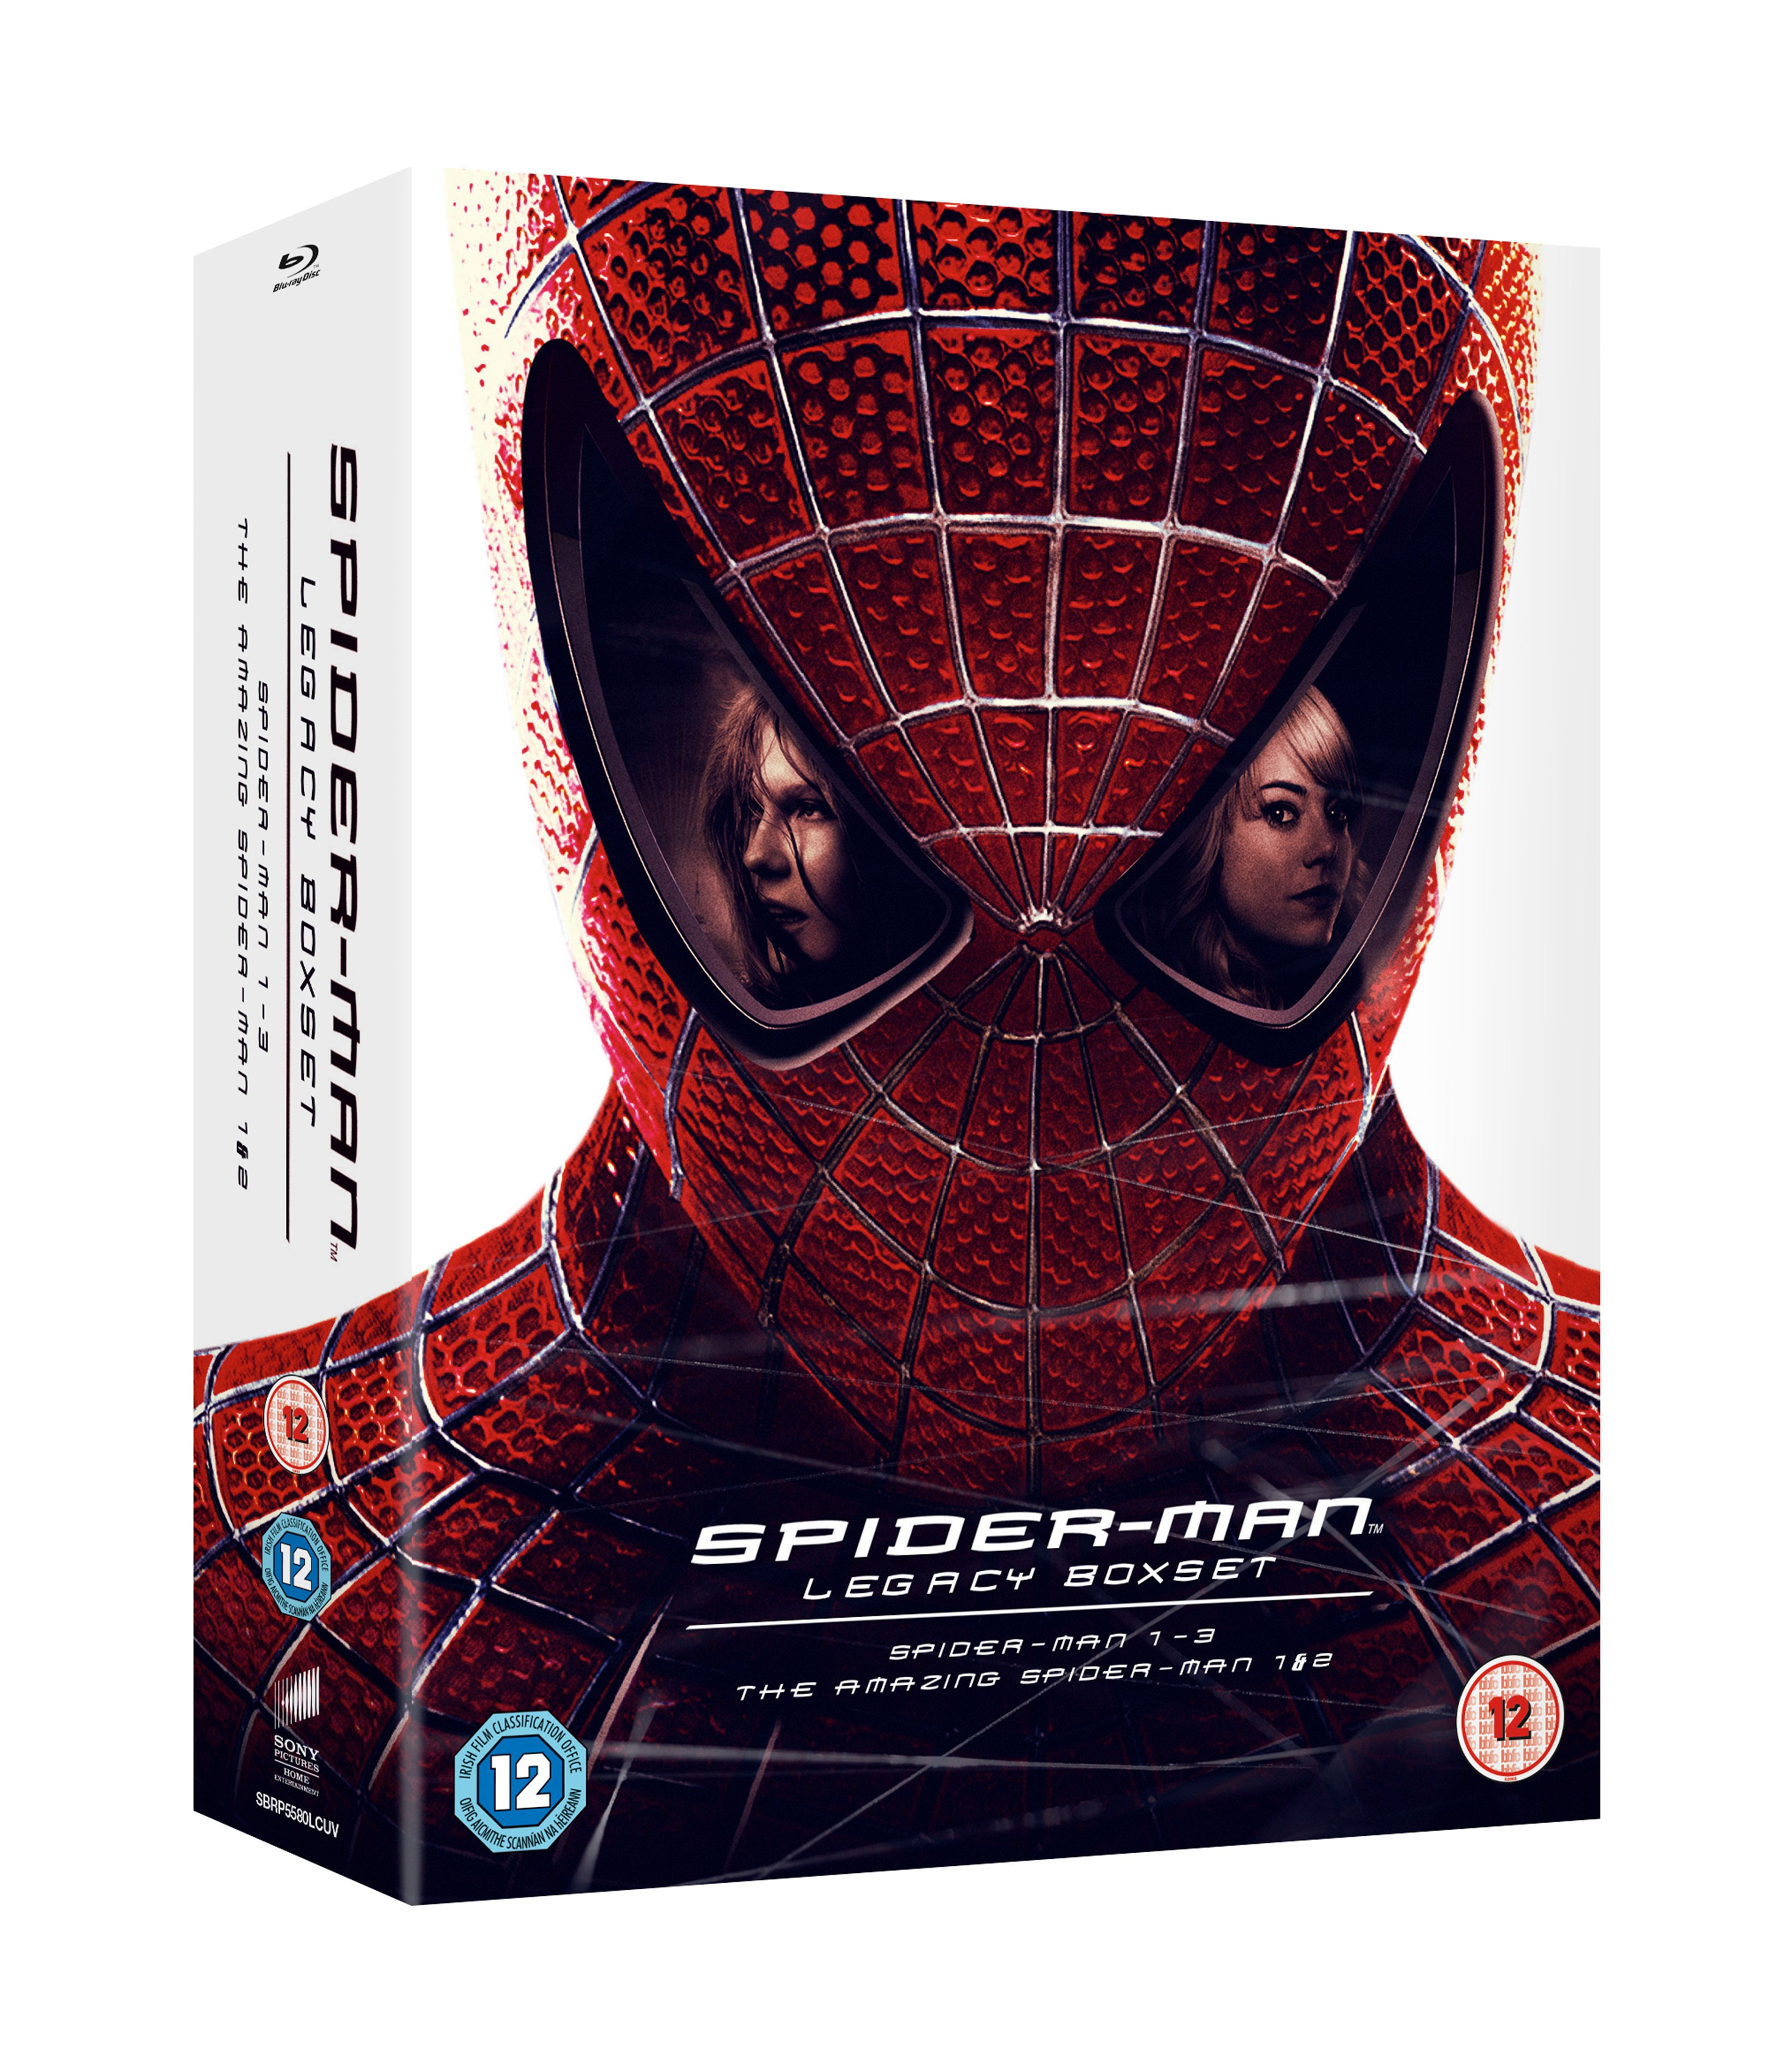 Spider-Man Legacy Collection Limited Edition Box Set - 2